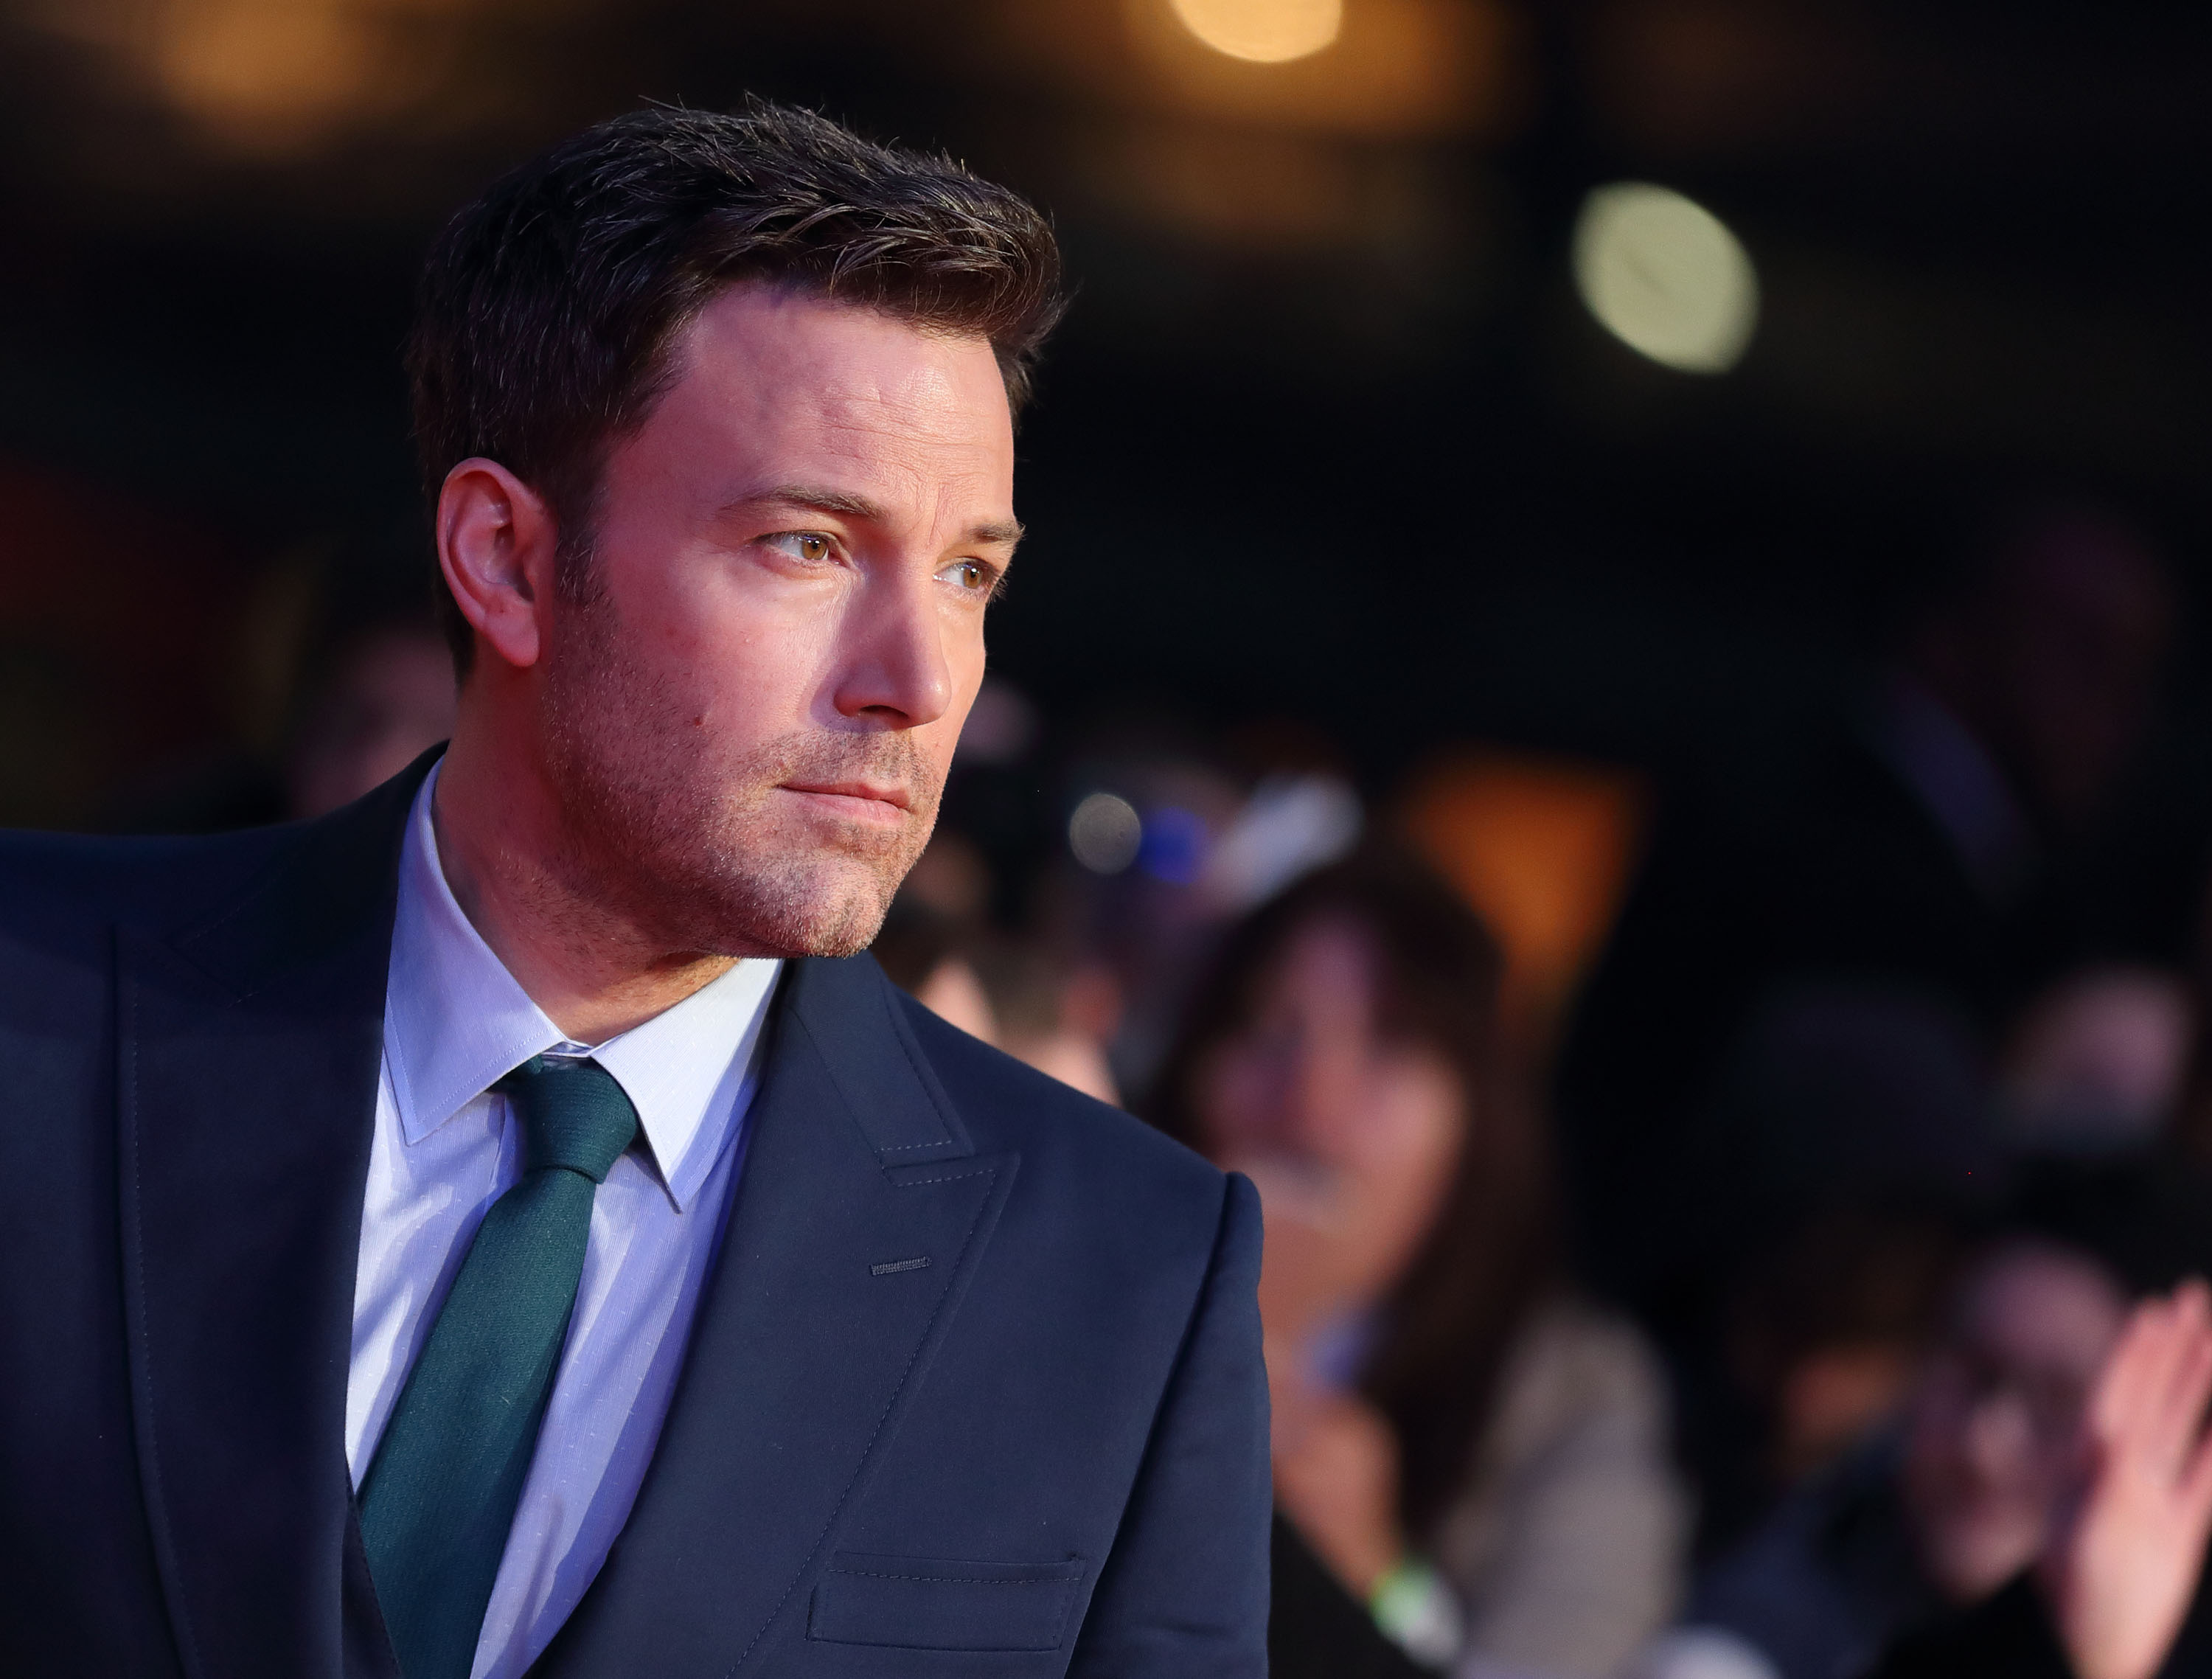 Ben Affleck arrives for the European Premiere of 'Batman V Superman: Dawn Of Justice' at Odeon Leicester Square, March 22, 2016 in London, England